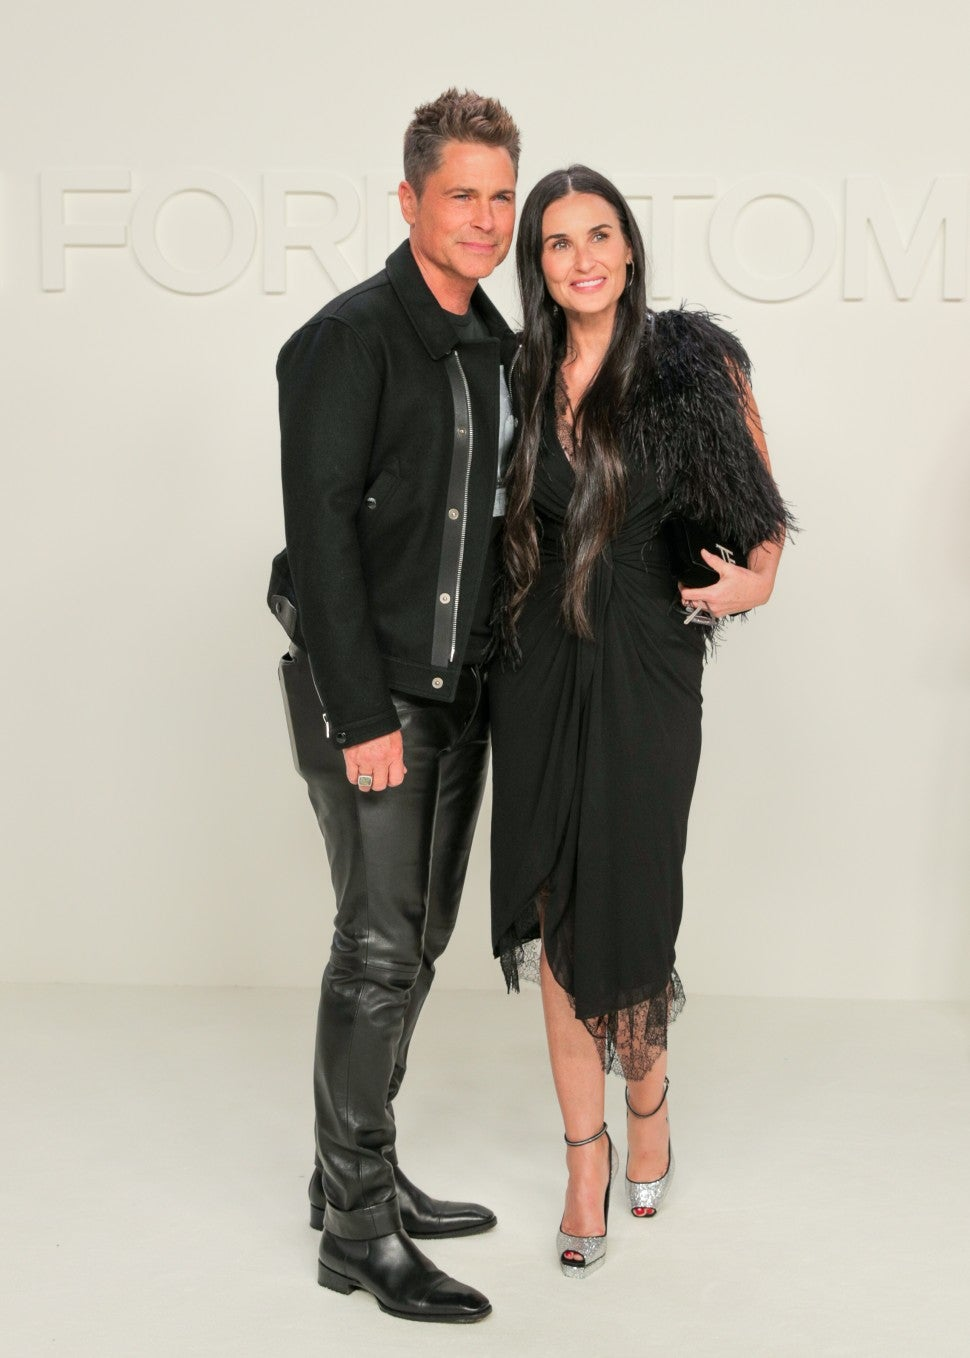 Rob Lowe and Demi Moore at Tom Ford F/W 2020 fashion show